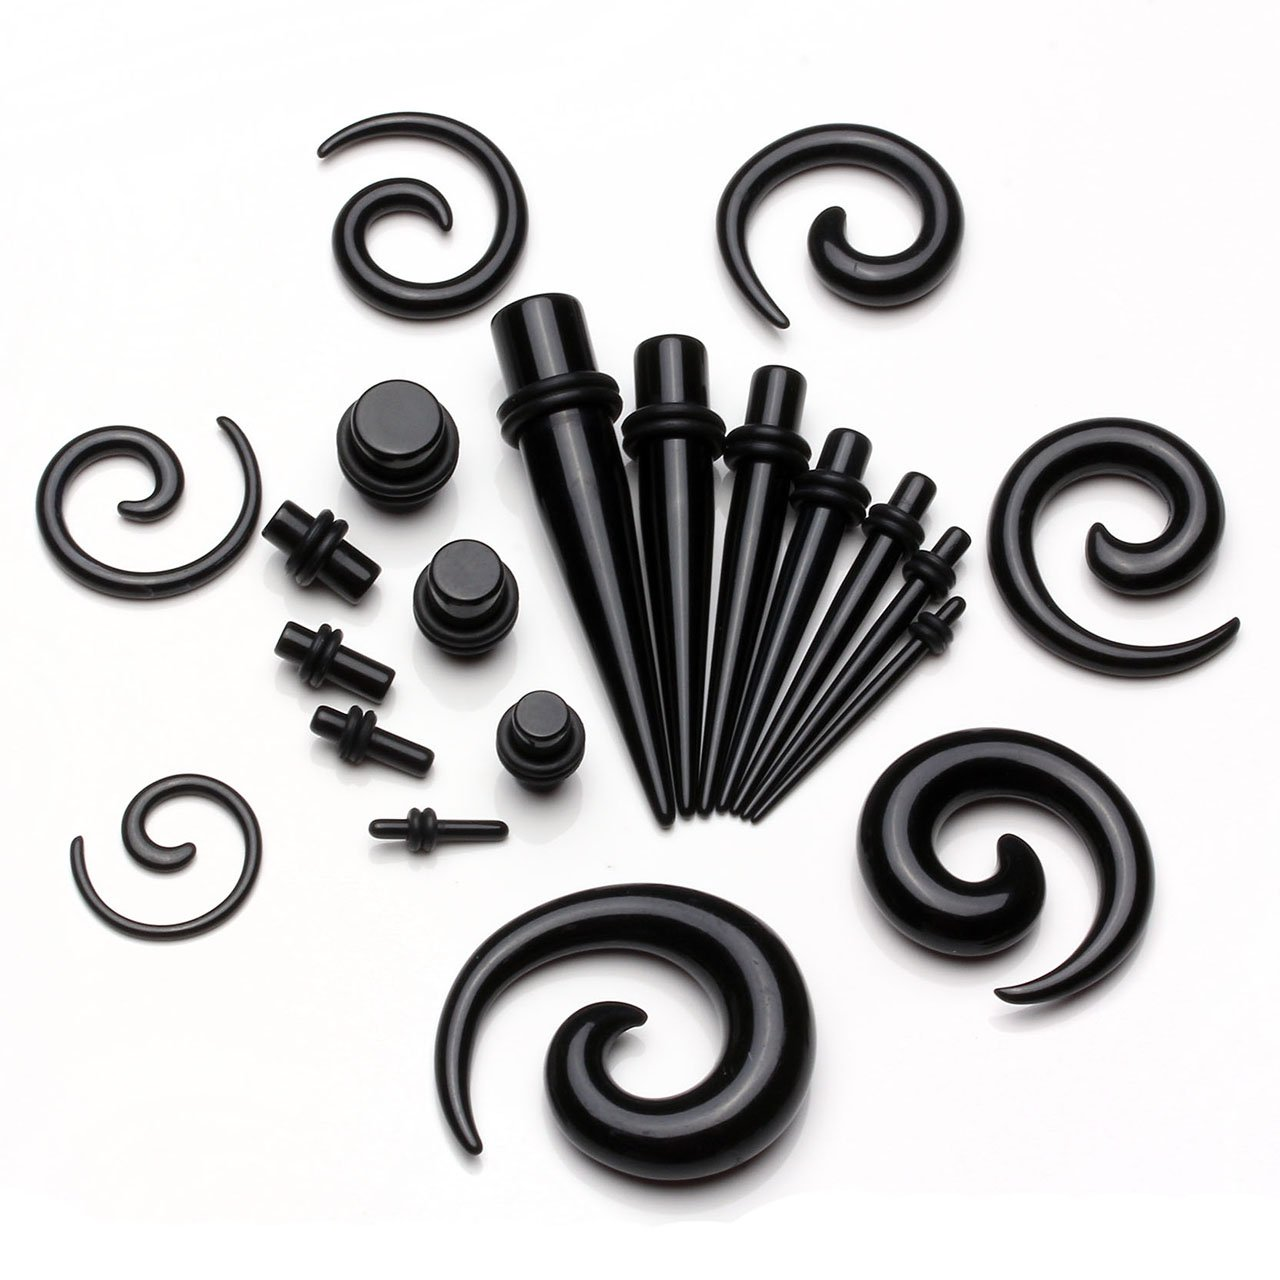 BOPREINA Ohrpiercing Set 21 Paare Acryl 2-10mm Knochenstab Straight Plug Set Schnecke Tupfen Spirale Taper Tunnel Set Dehnstab Dehnungsset Ohr Expander Piercing Set Unisex Punk, Schwarz/Weiß (Schwarz)